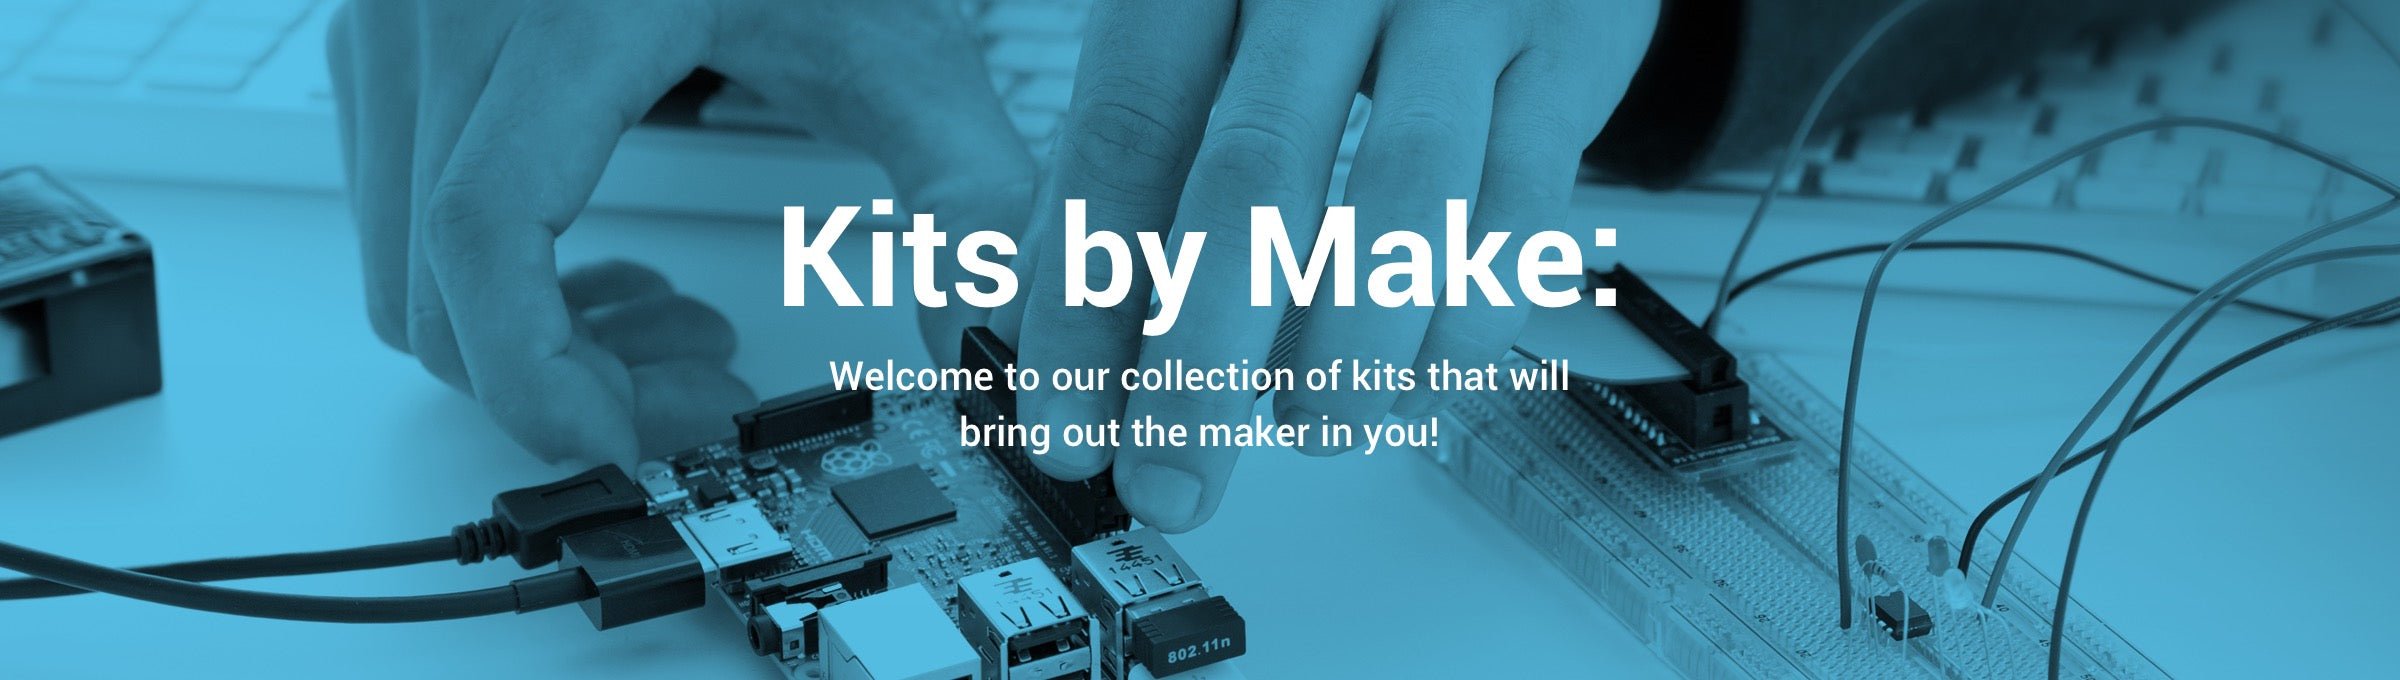 Arduino, RaspberryPi, and Soldering Kits